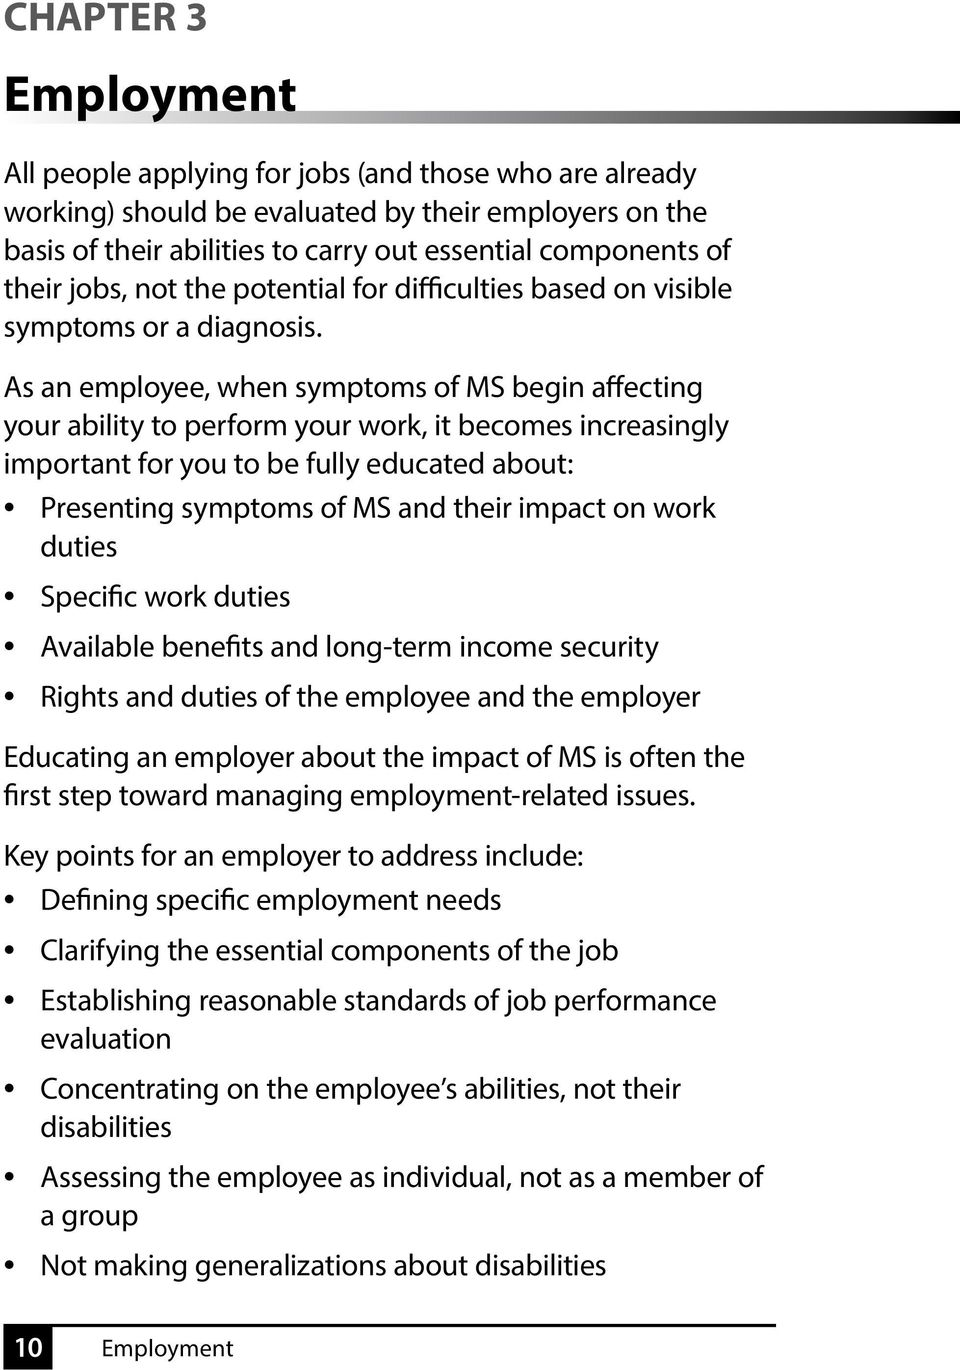 As an employee, when symptoms of MS begin affecting your ability to perform your work, it becomes increasingly important for you to be fully educated about: Presenting symptoms of MS and their impact